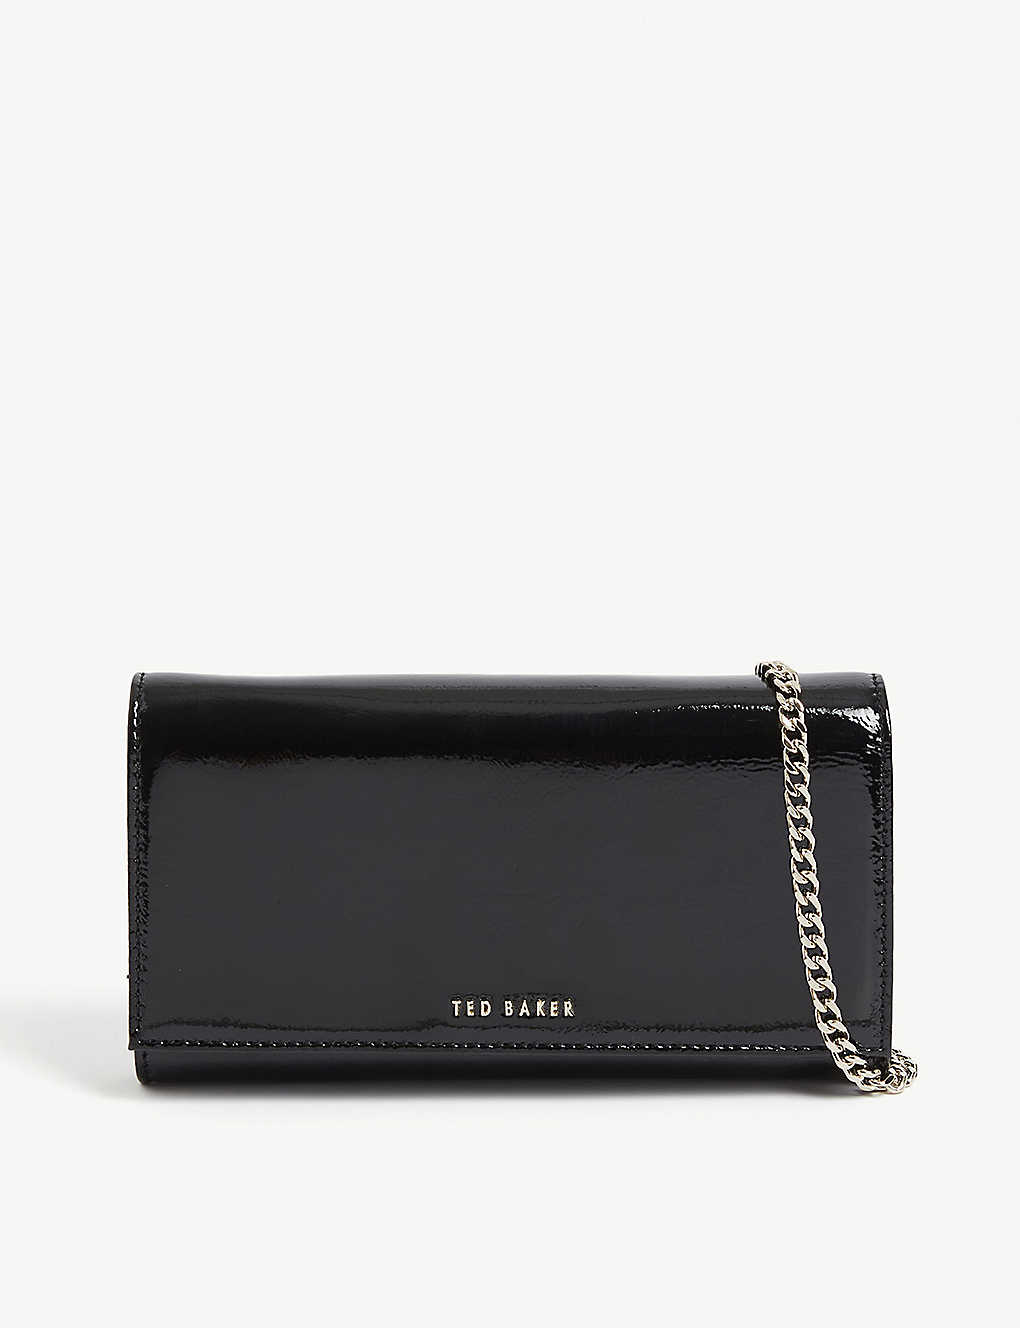 ted baker patent bag